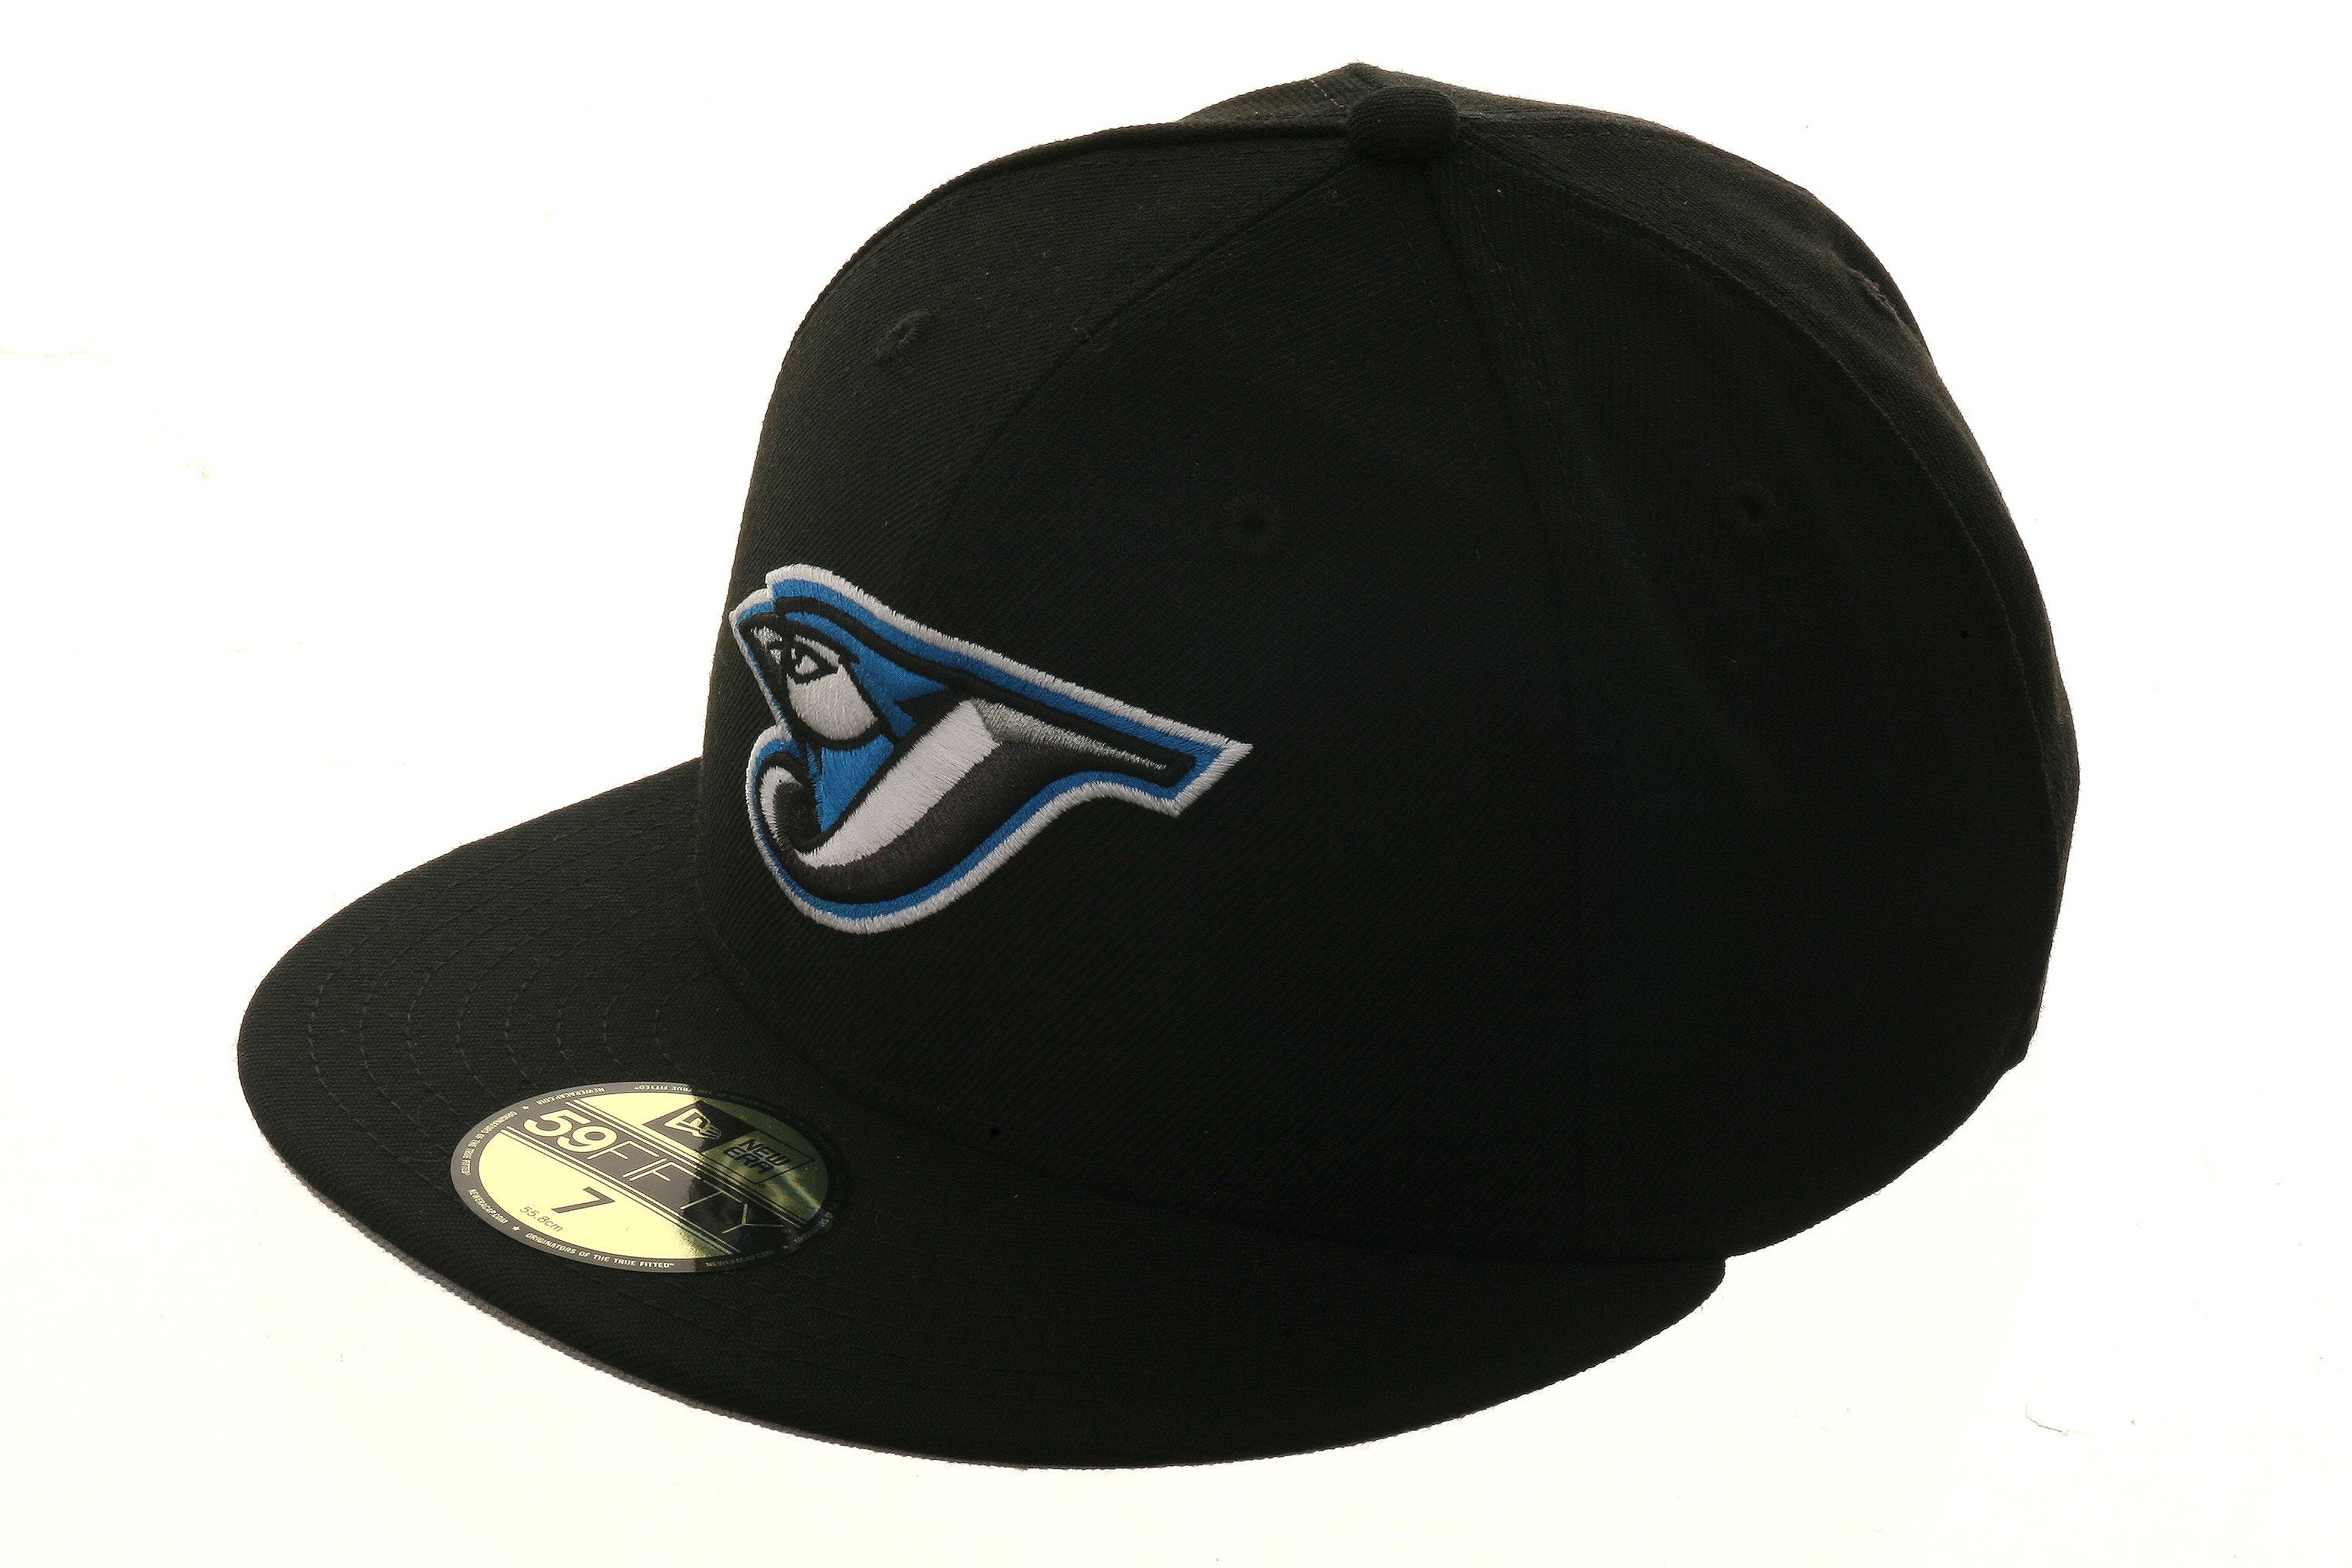 Toronto Blue Jays 2004 Game Exclusive New Era 59Fifty w/ Gray Undervisor Hat - Black